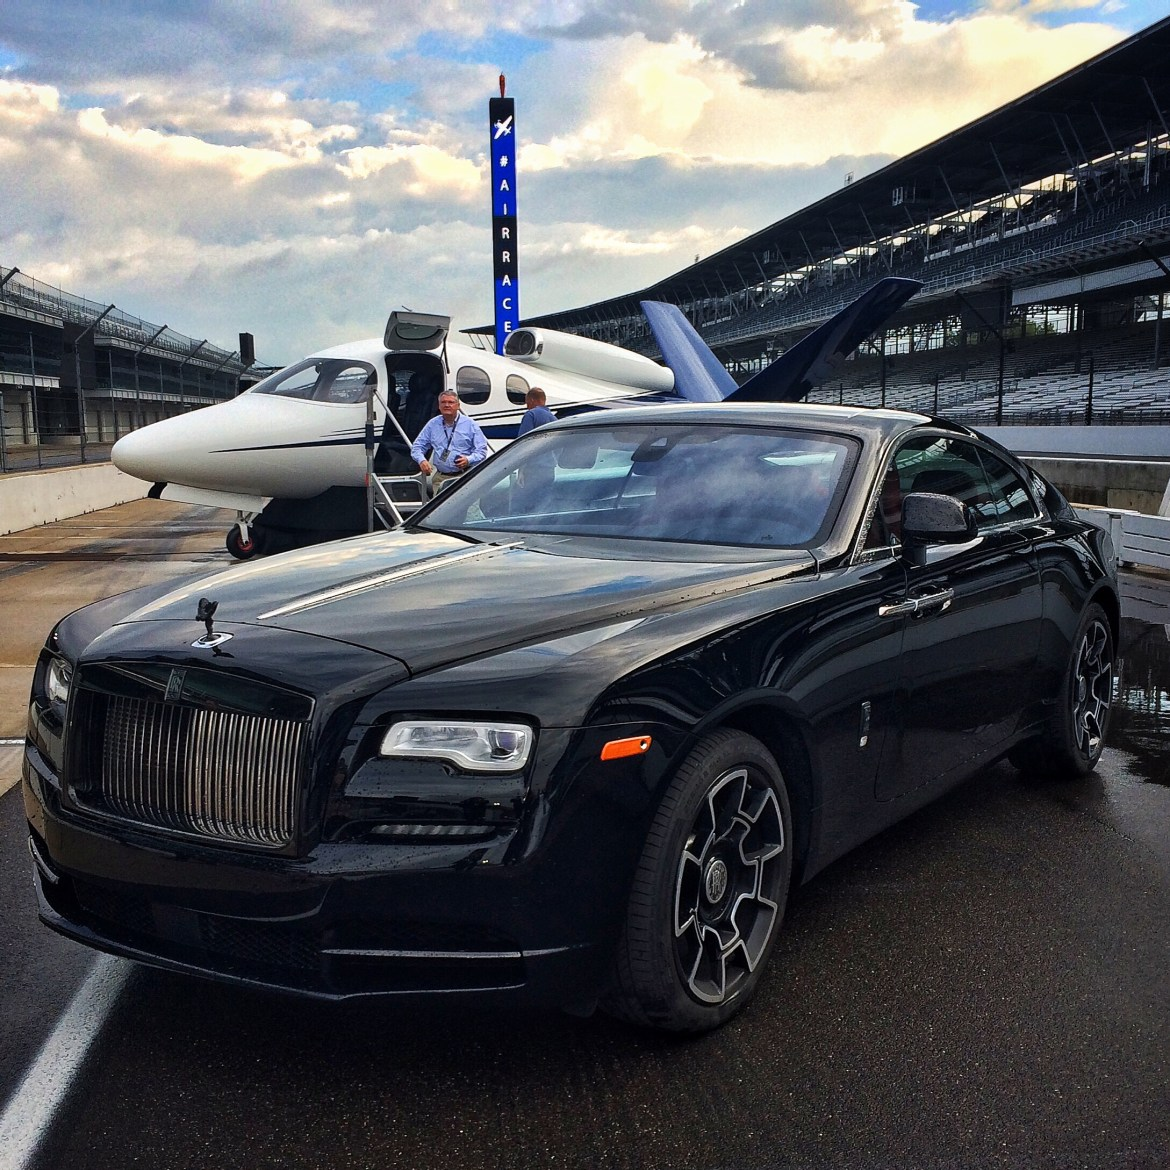 2016 Rolls Royce Wraith Camshaft: The Baddest Rolls-Royce Ever. Wraith Black Badge.